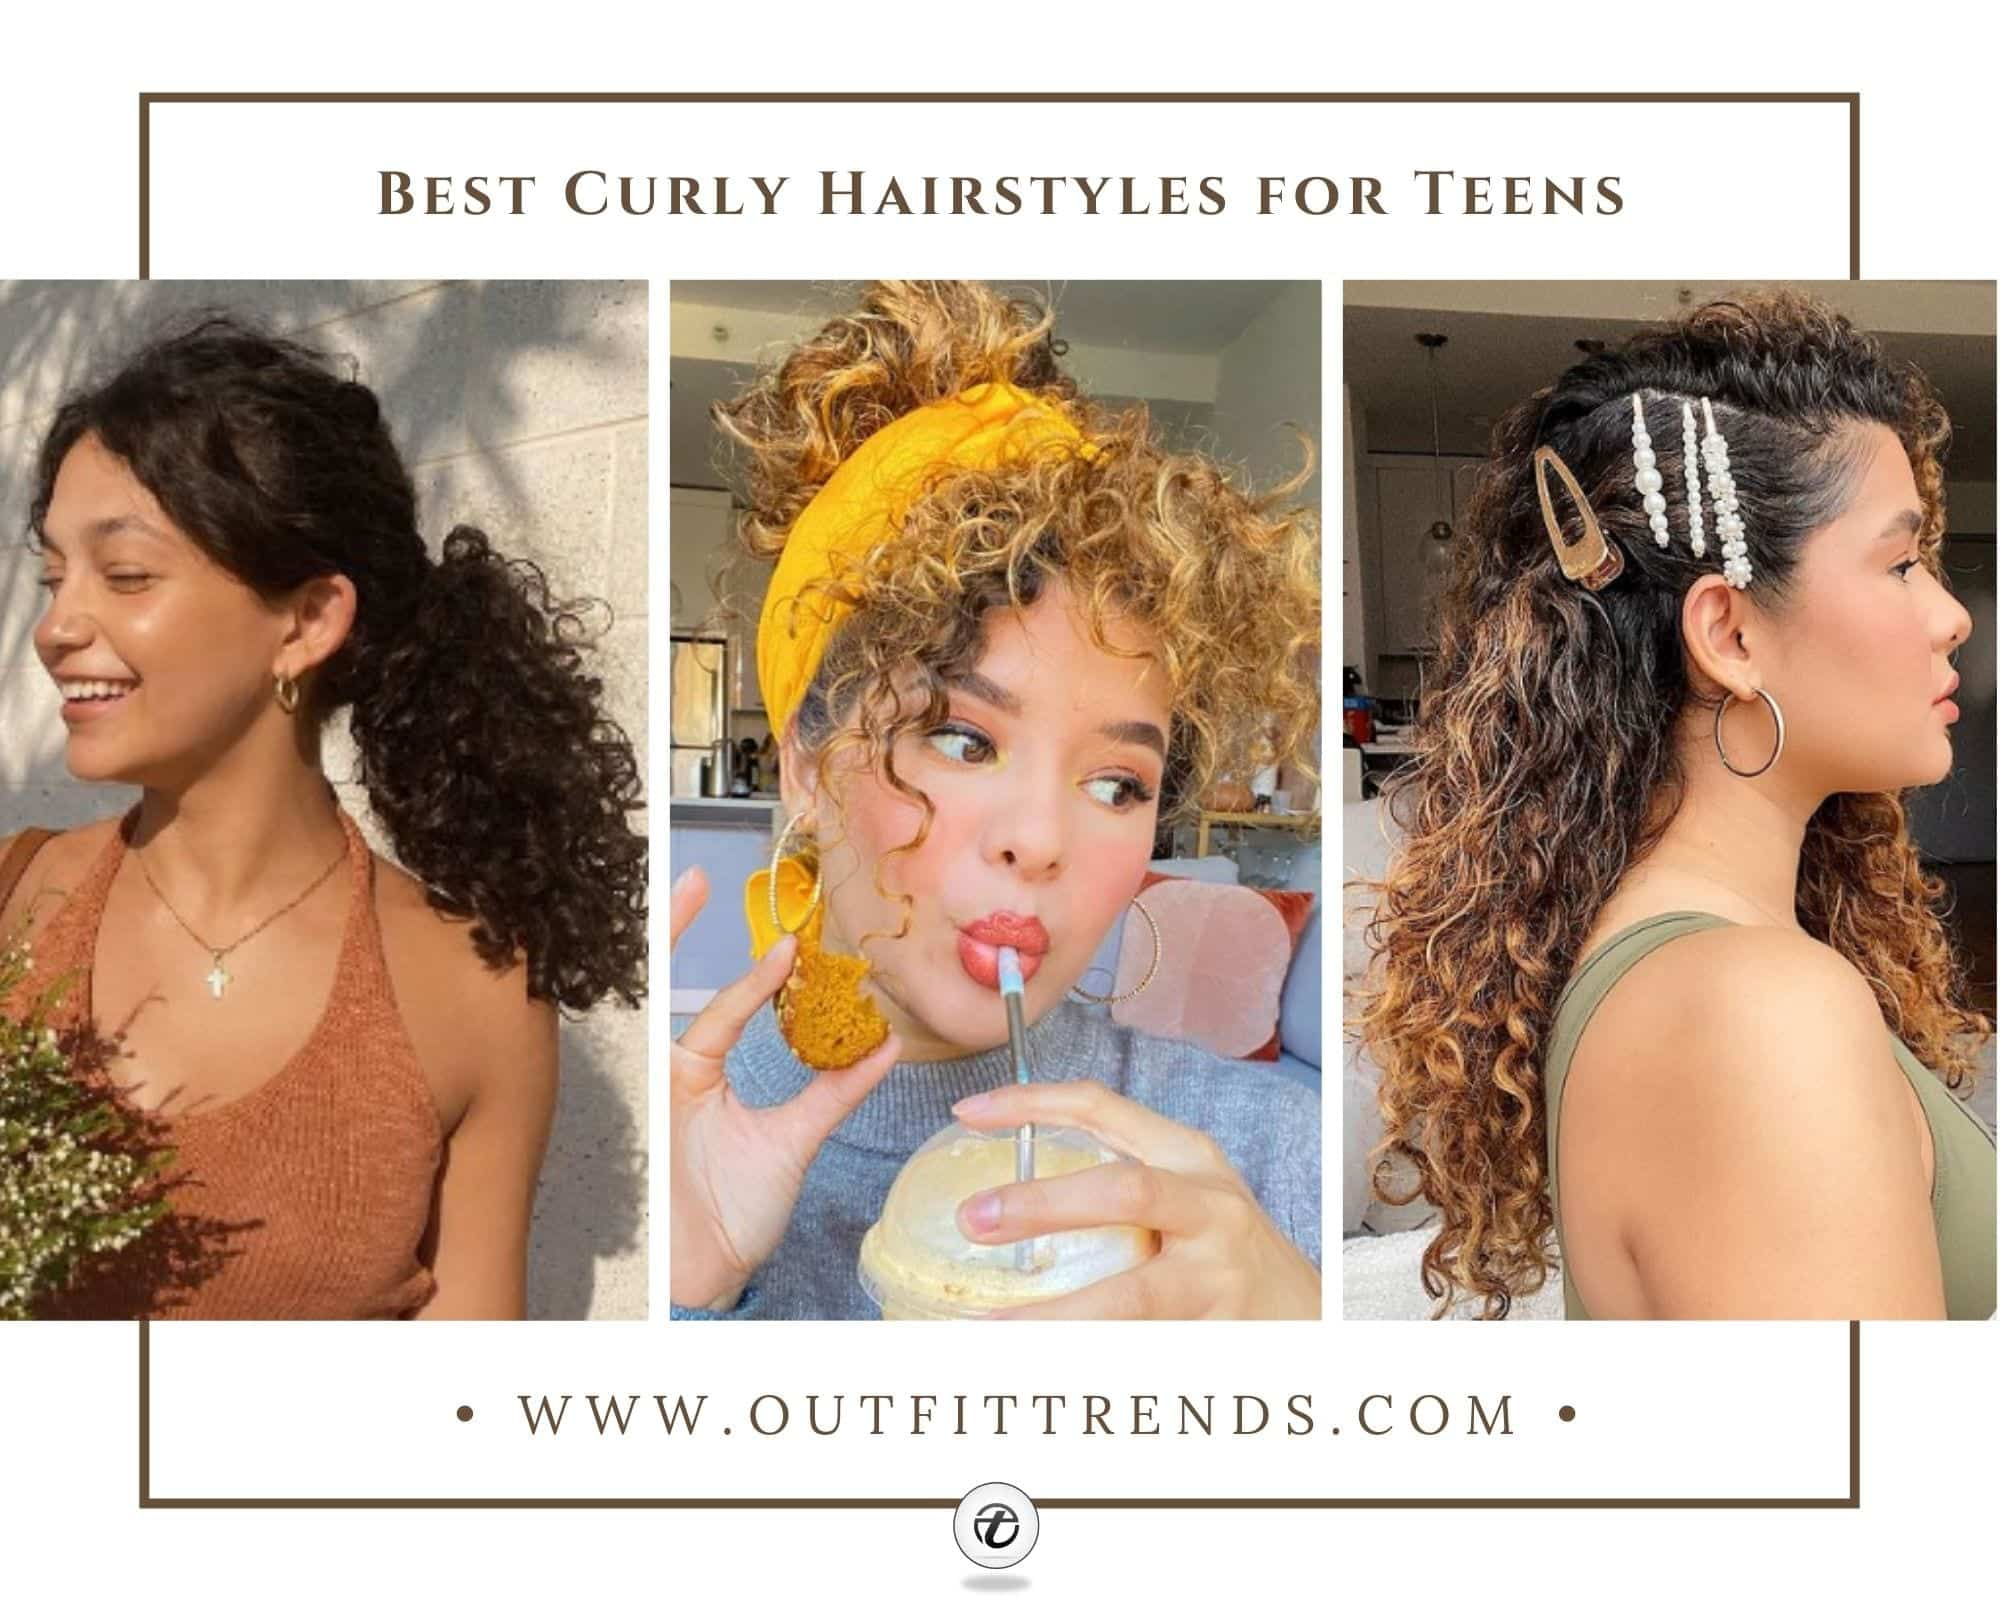 Curly Hairstyles for Teenage Girls | 25 Best Styles to Try